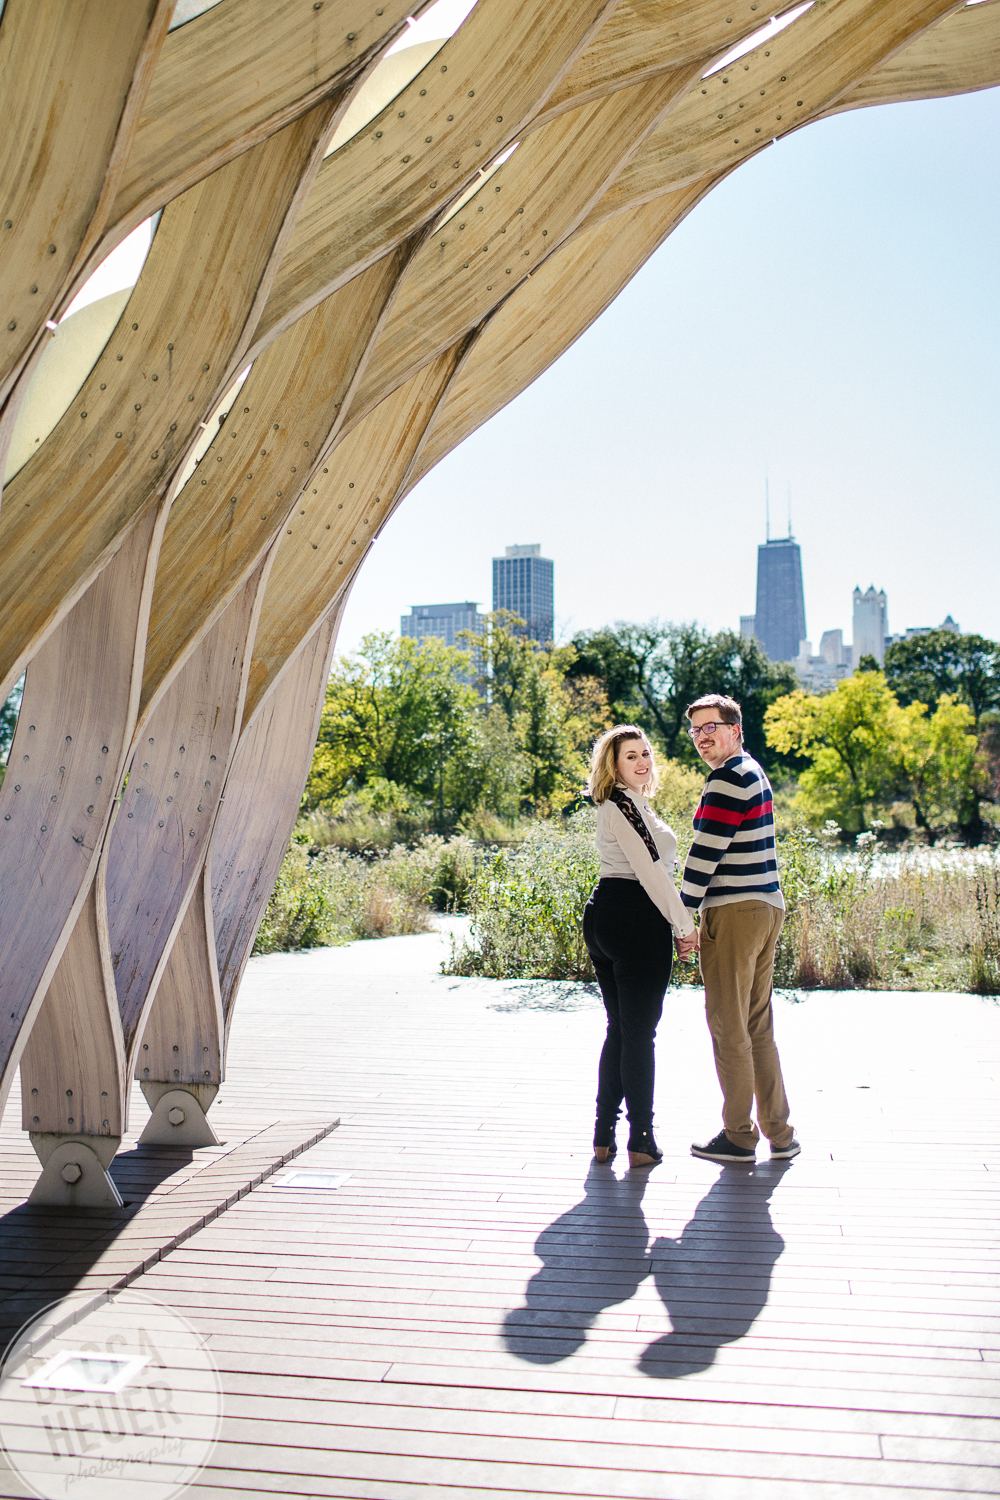 LincolnPark Proposal_Engagement Photography-041.jpg